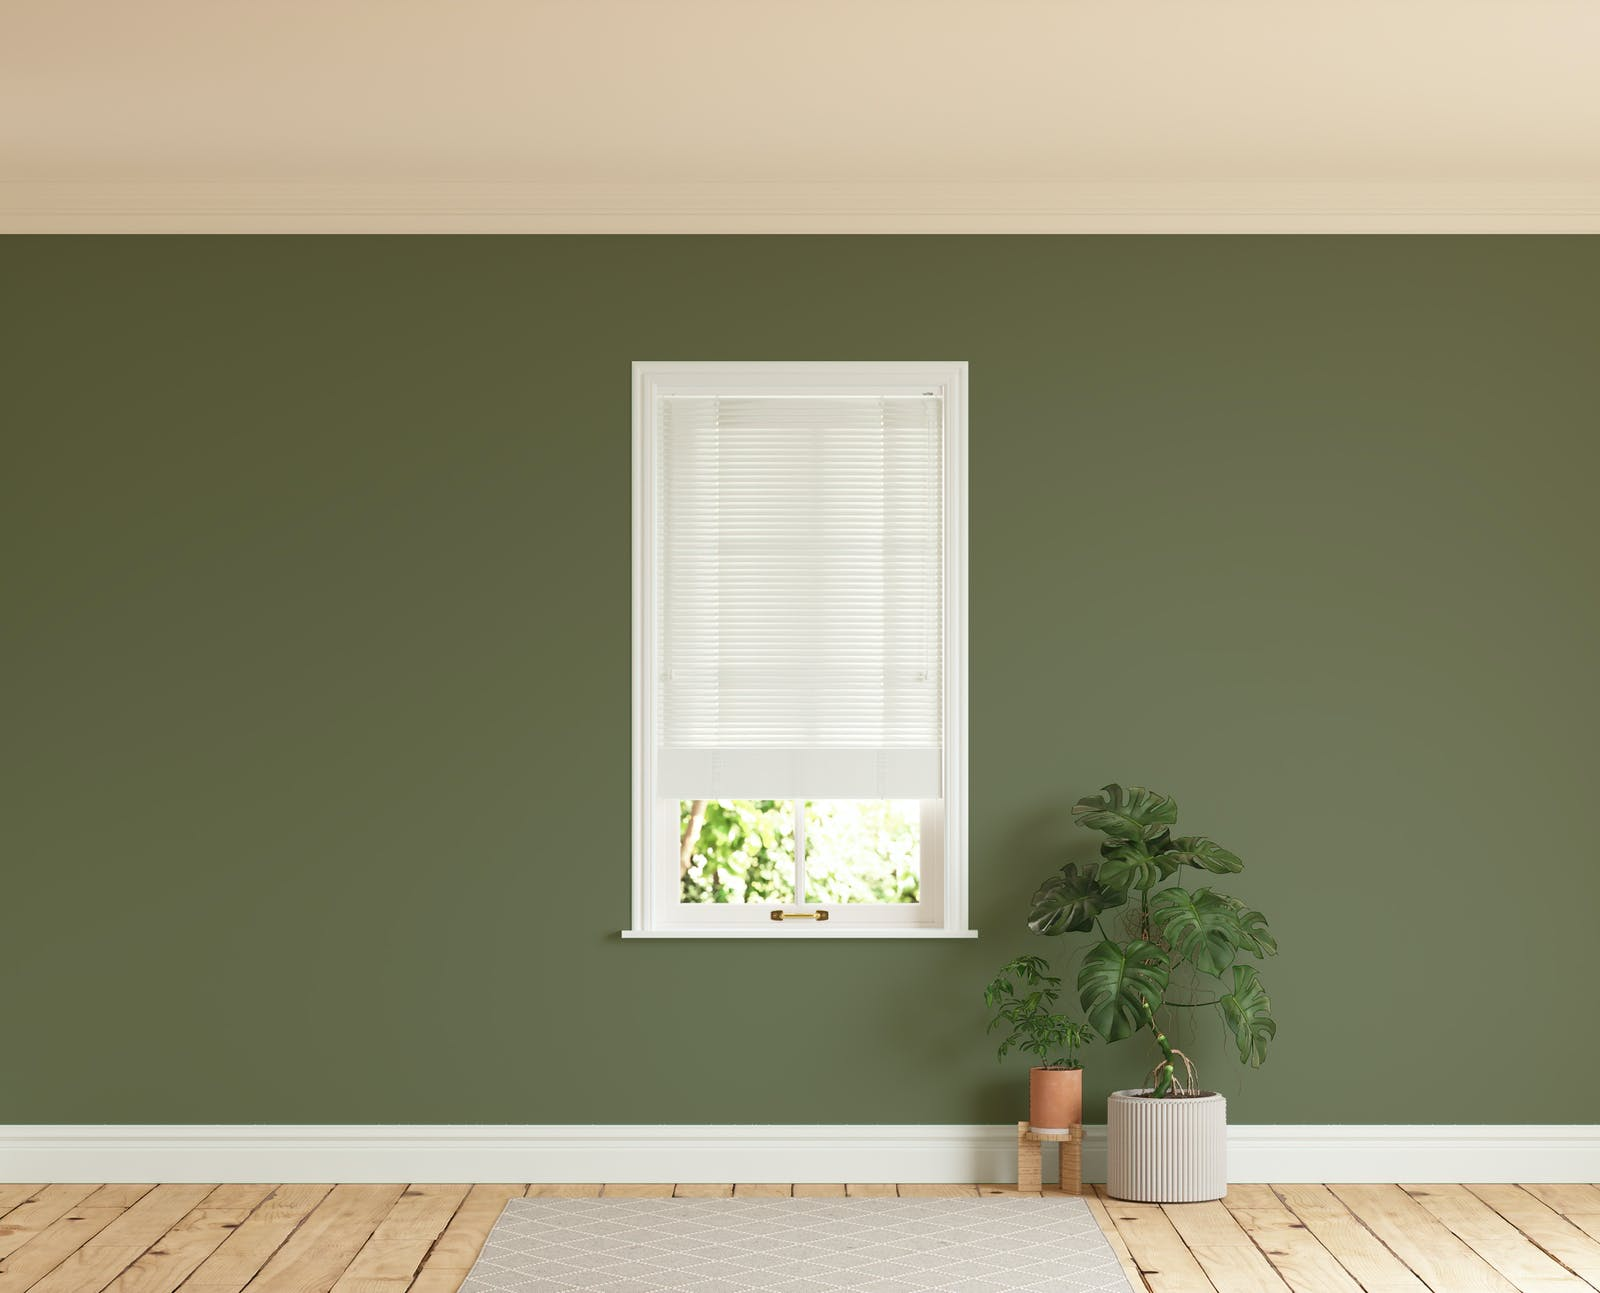 Room with walls painted in Lick Green 05 and White 01 Venetian fine grain blinds